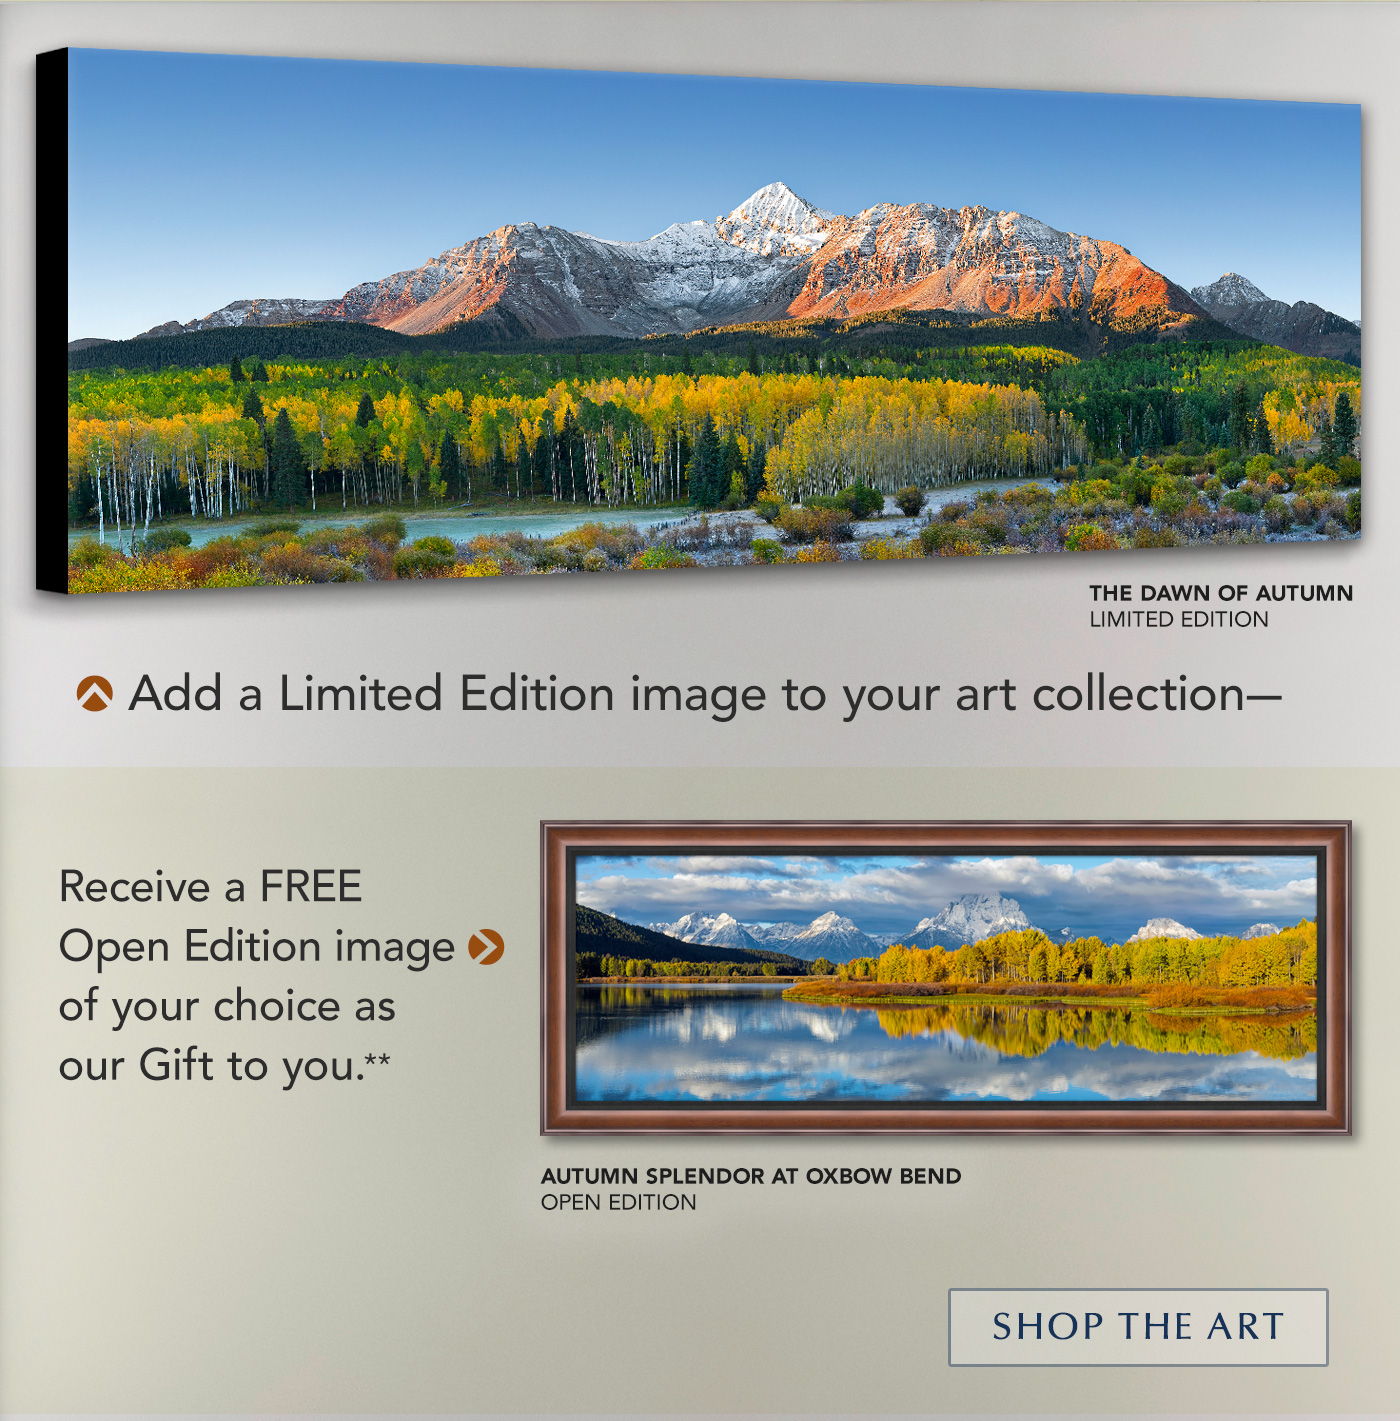 Add a Limited Edition image to your art collection and get a free Open Edition as our gift to you.